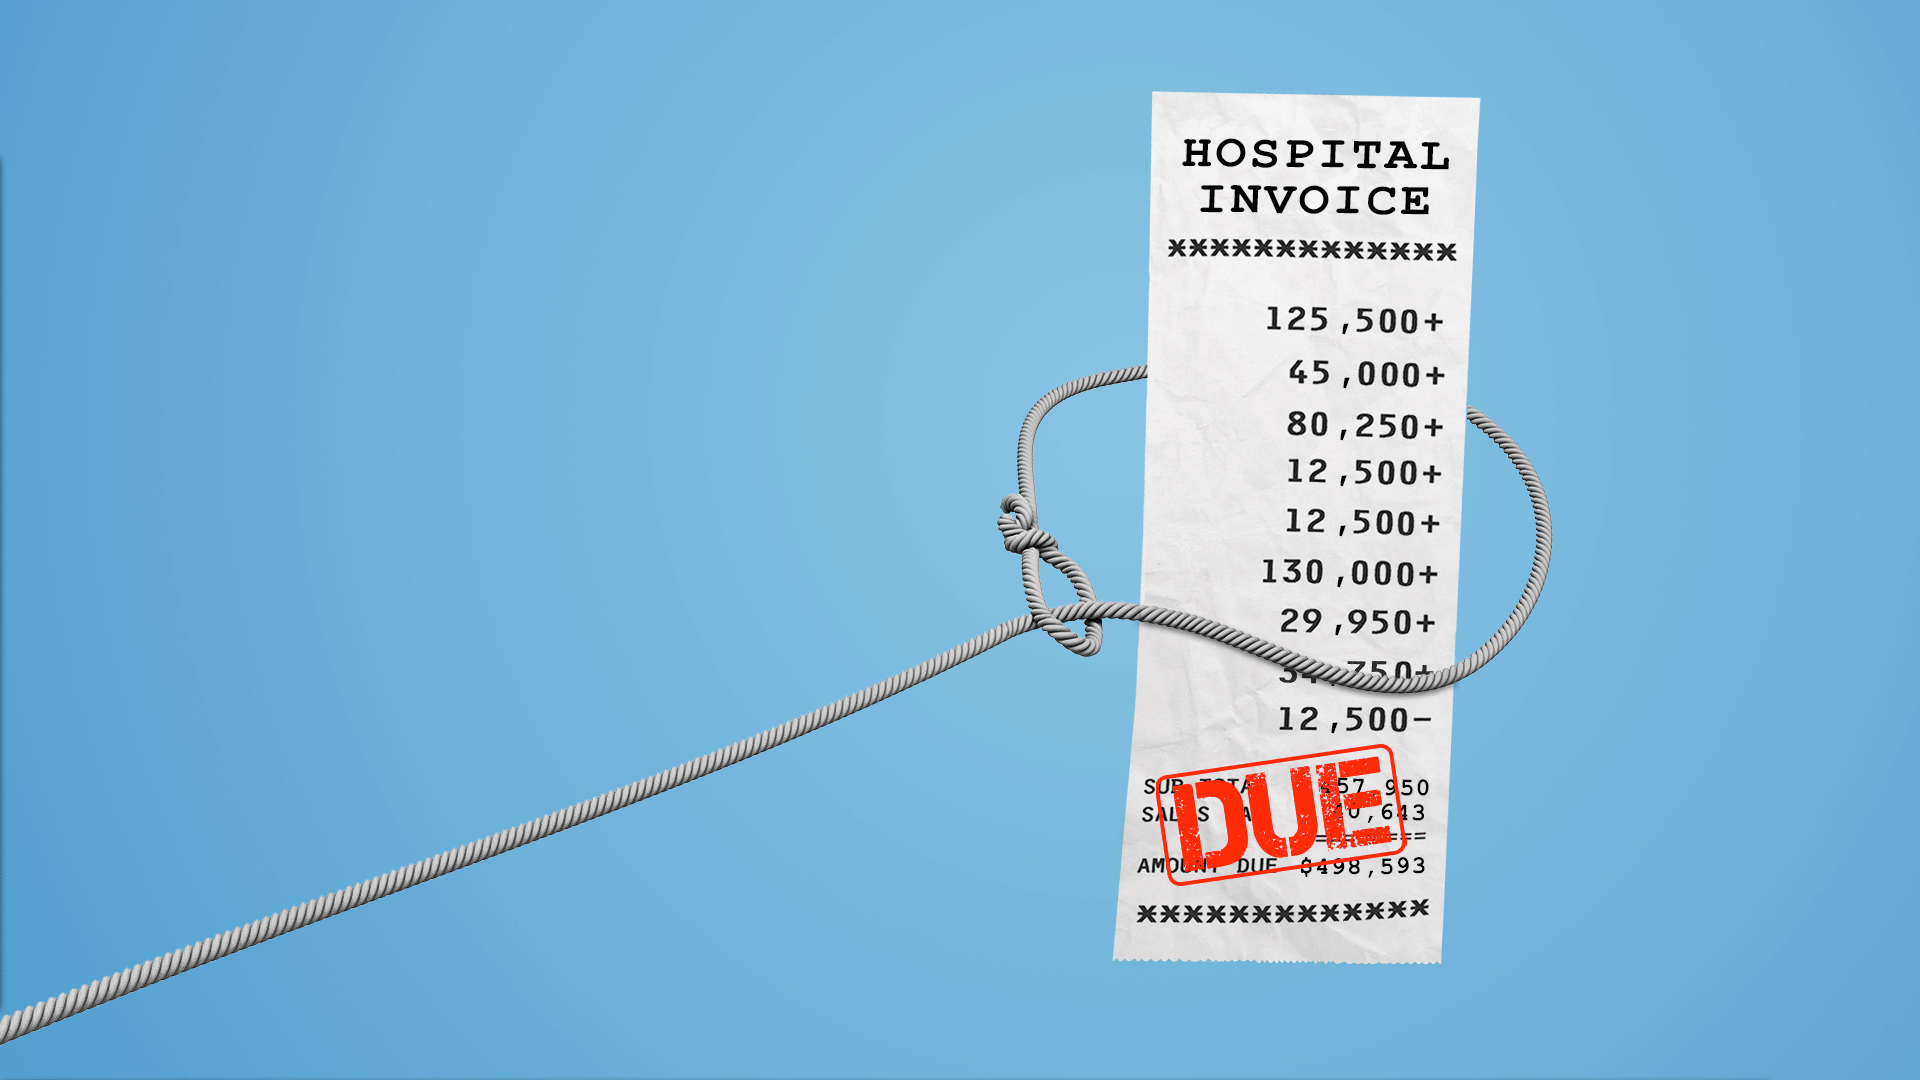 Illustration of rope lassoing a hospital bill.